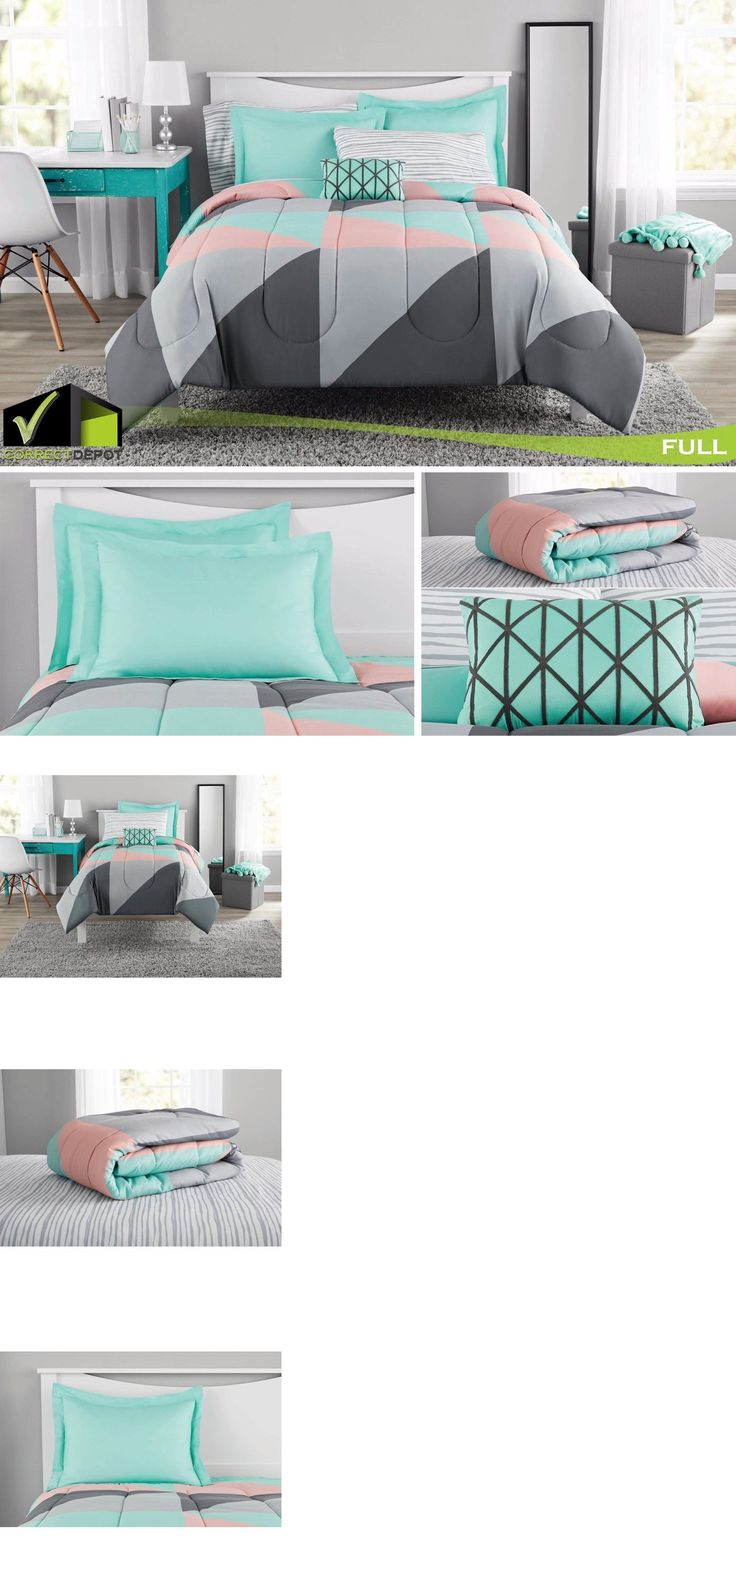 Pcs peter pan bedding set duvet cover fitted sheet pillow case worl - Discount Furniture Teal Bedding Sets Queen Bed In A Bag 20469 Gray And Teal Bed In A Bag